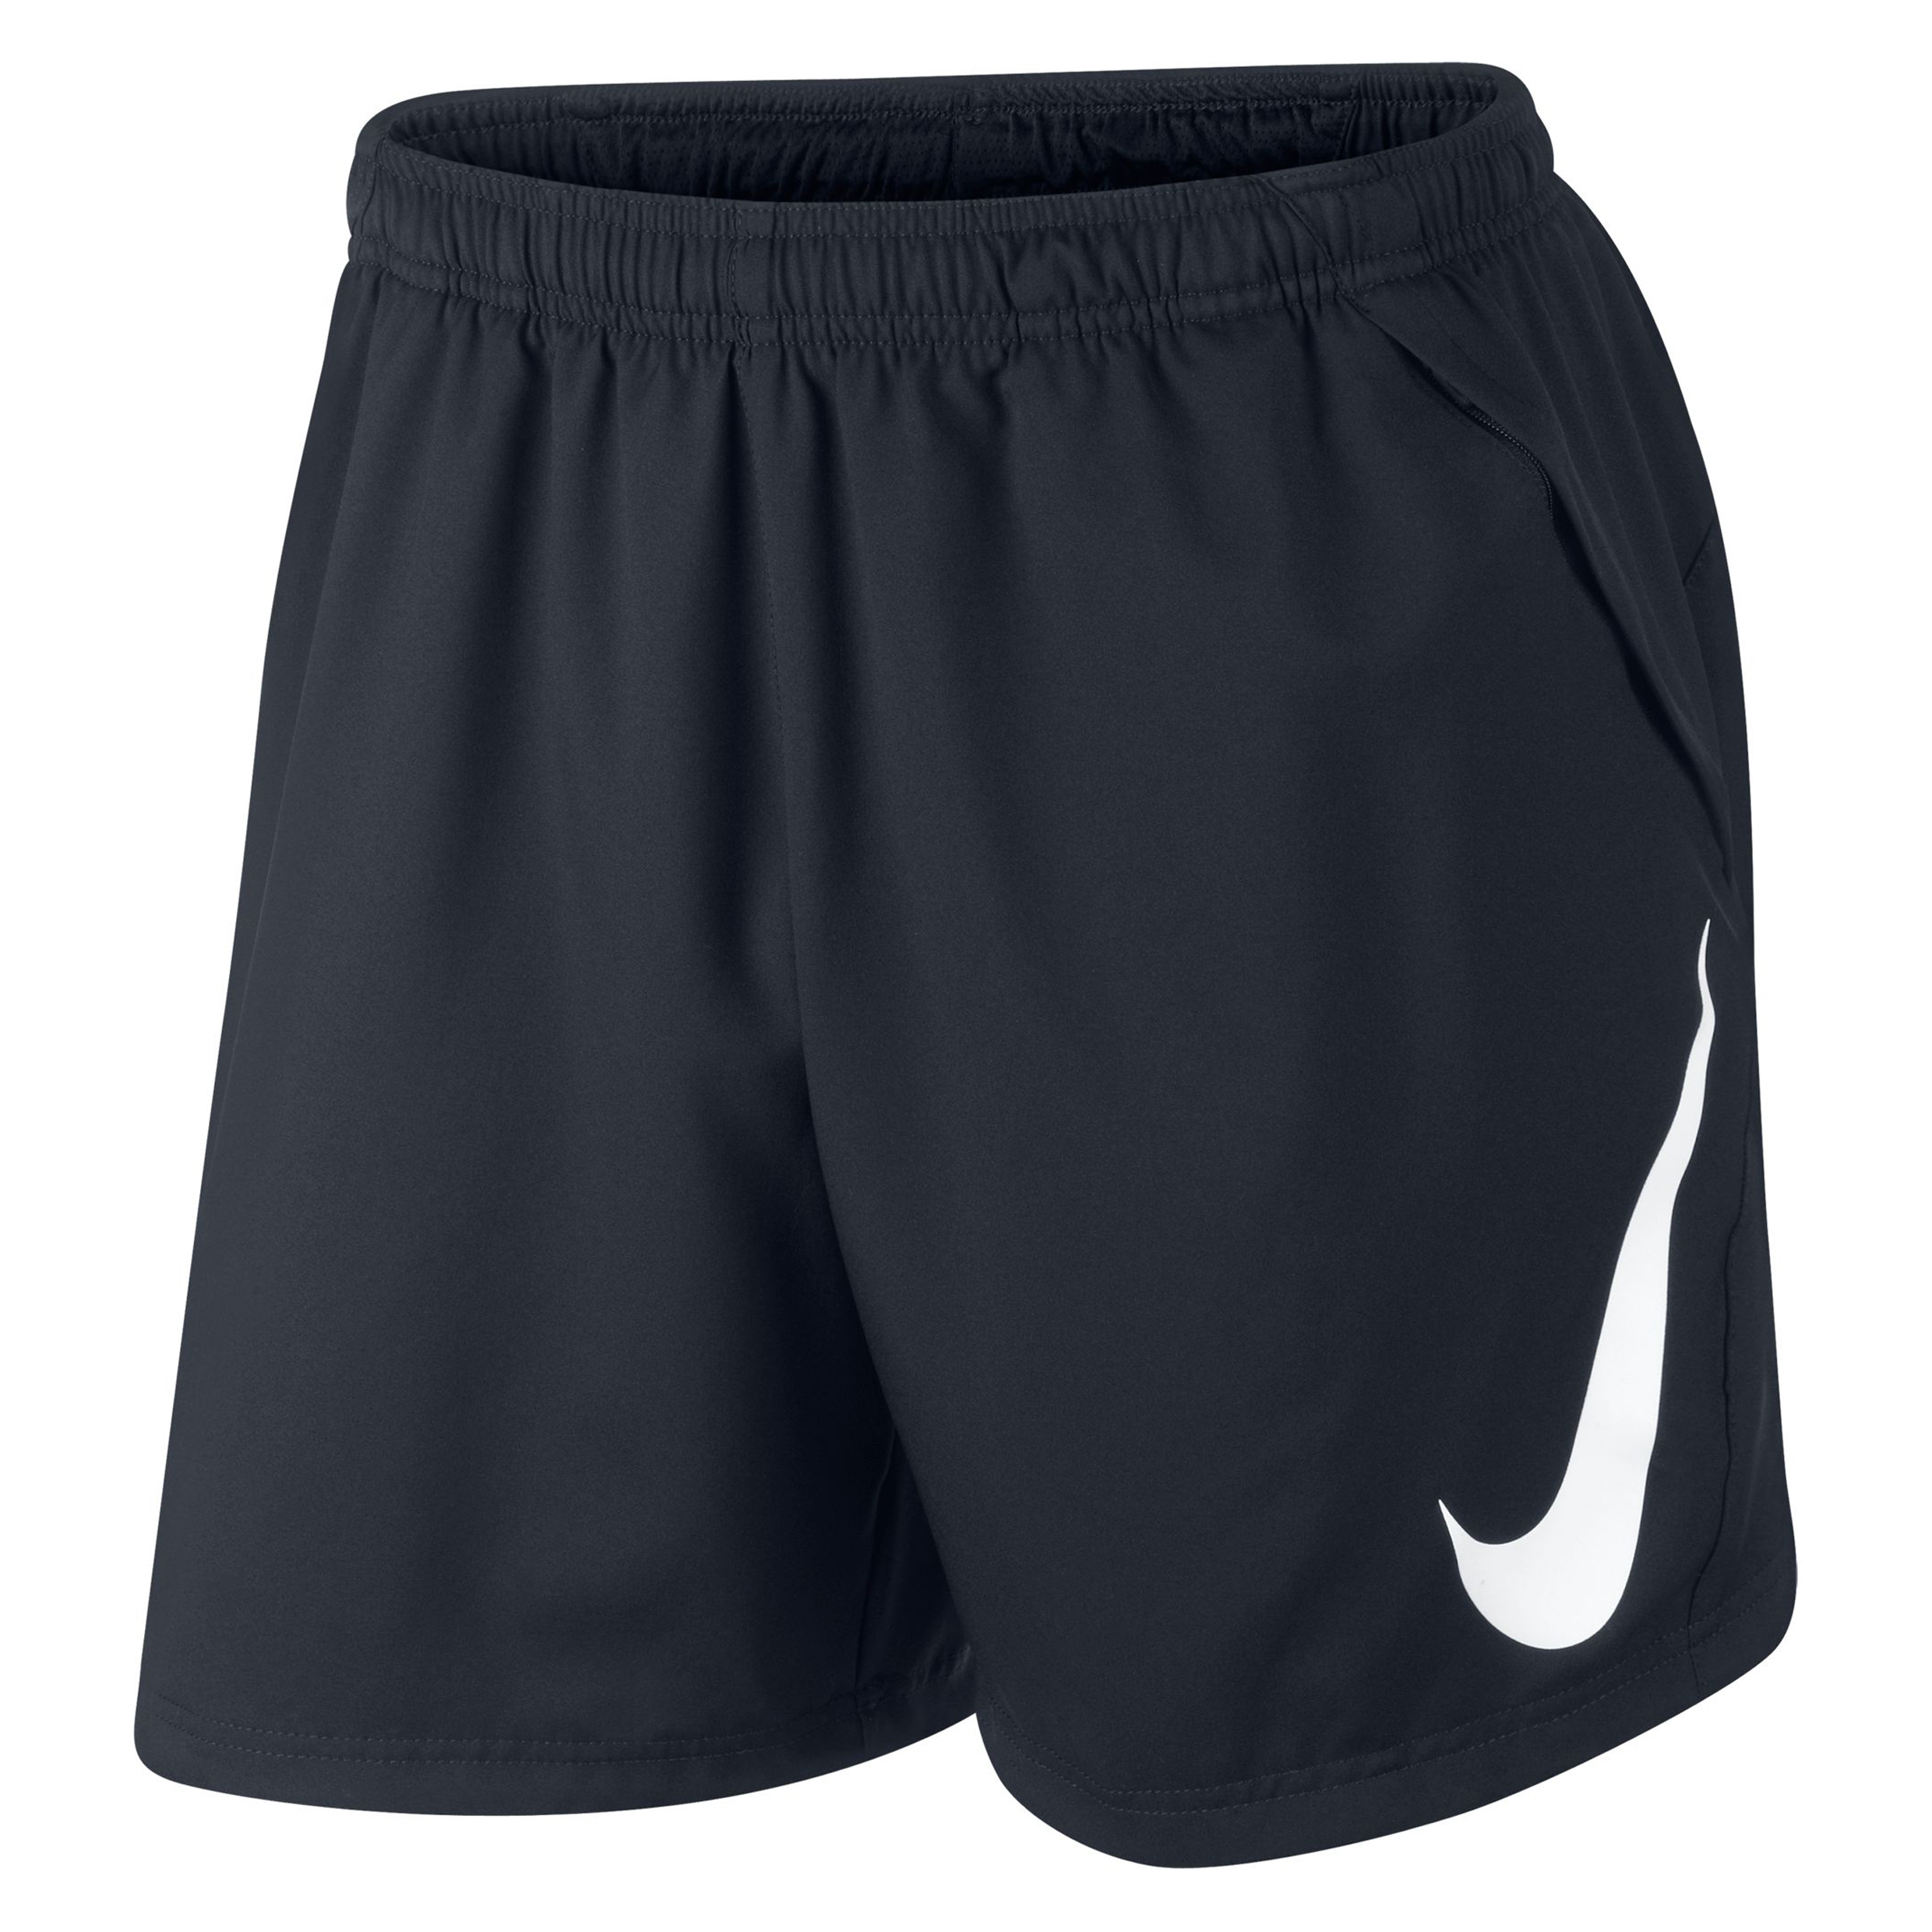 Nike GPX Boys Woven Short - Dark Obsidian/White Navy